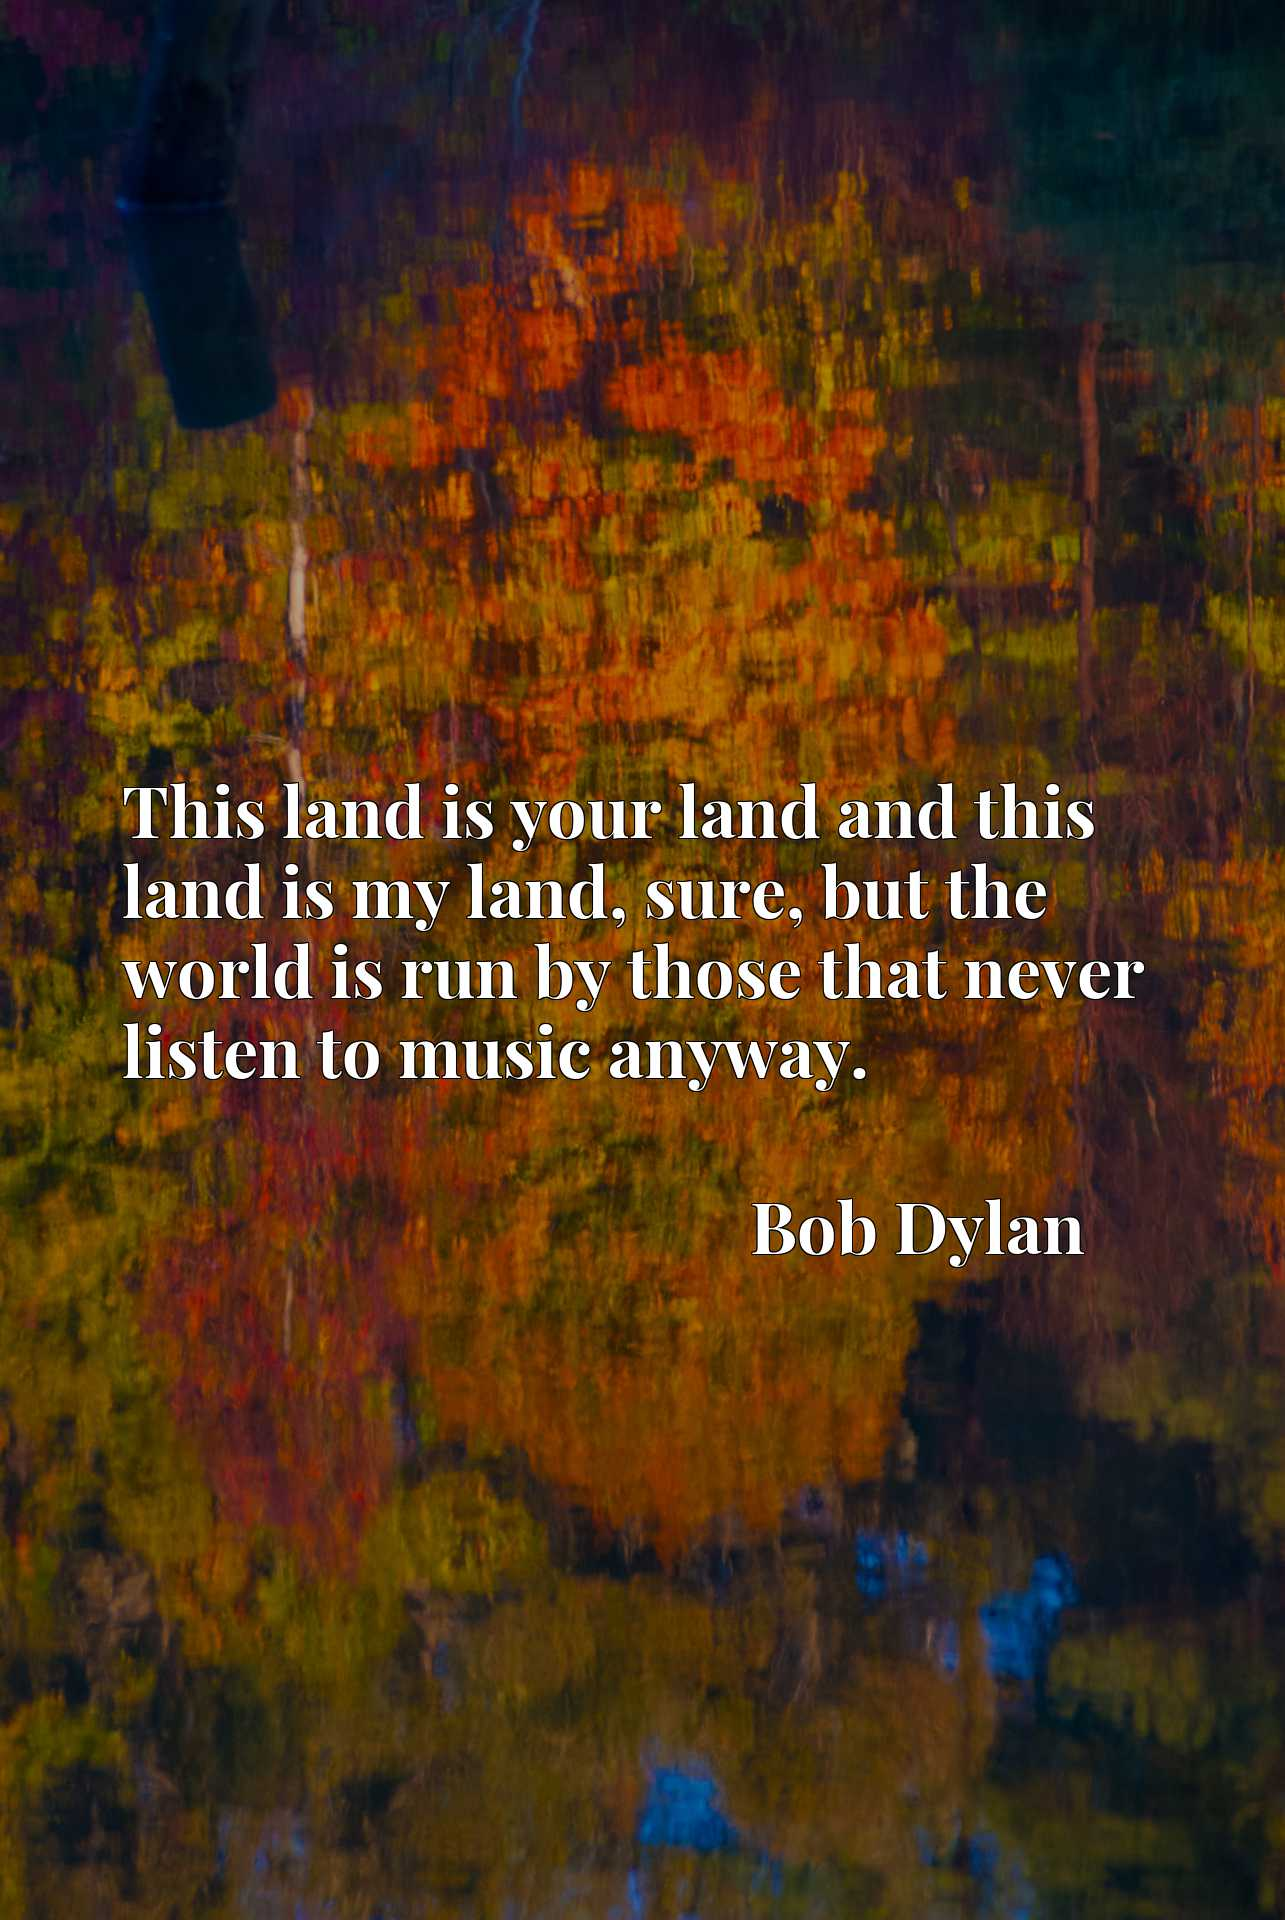 This land is your land and this land is my land, sure, but the world is run by those that never listen to music anyway.